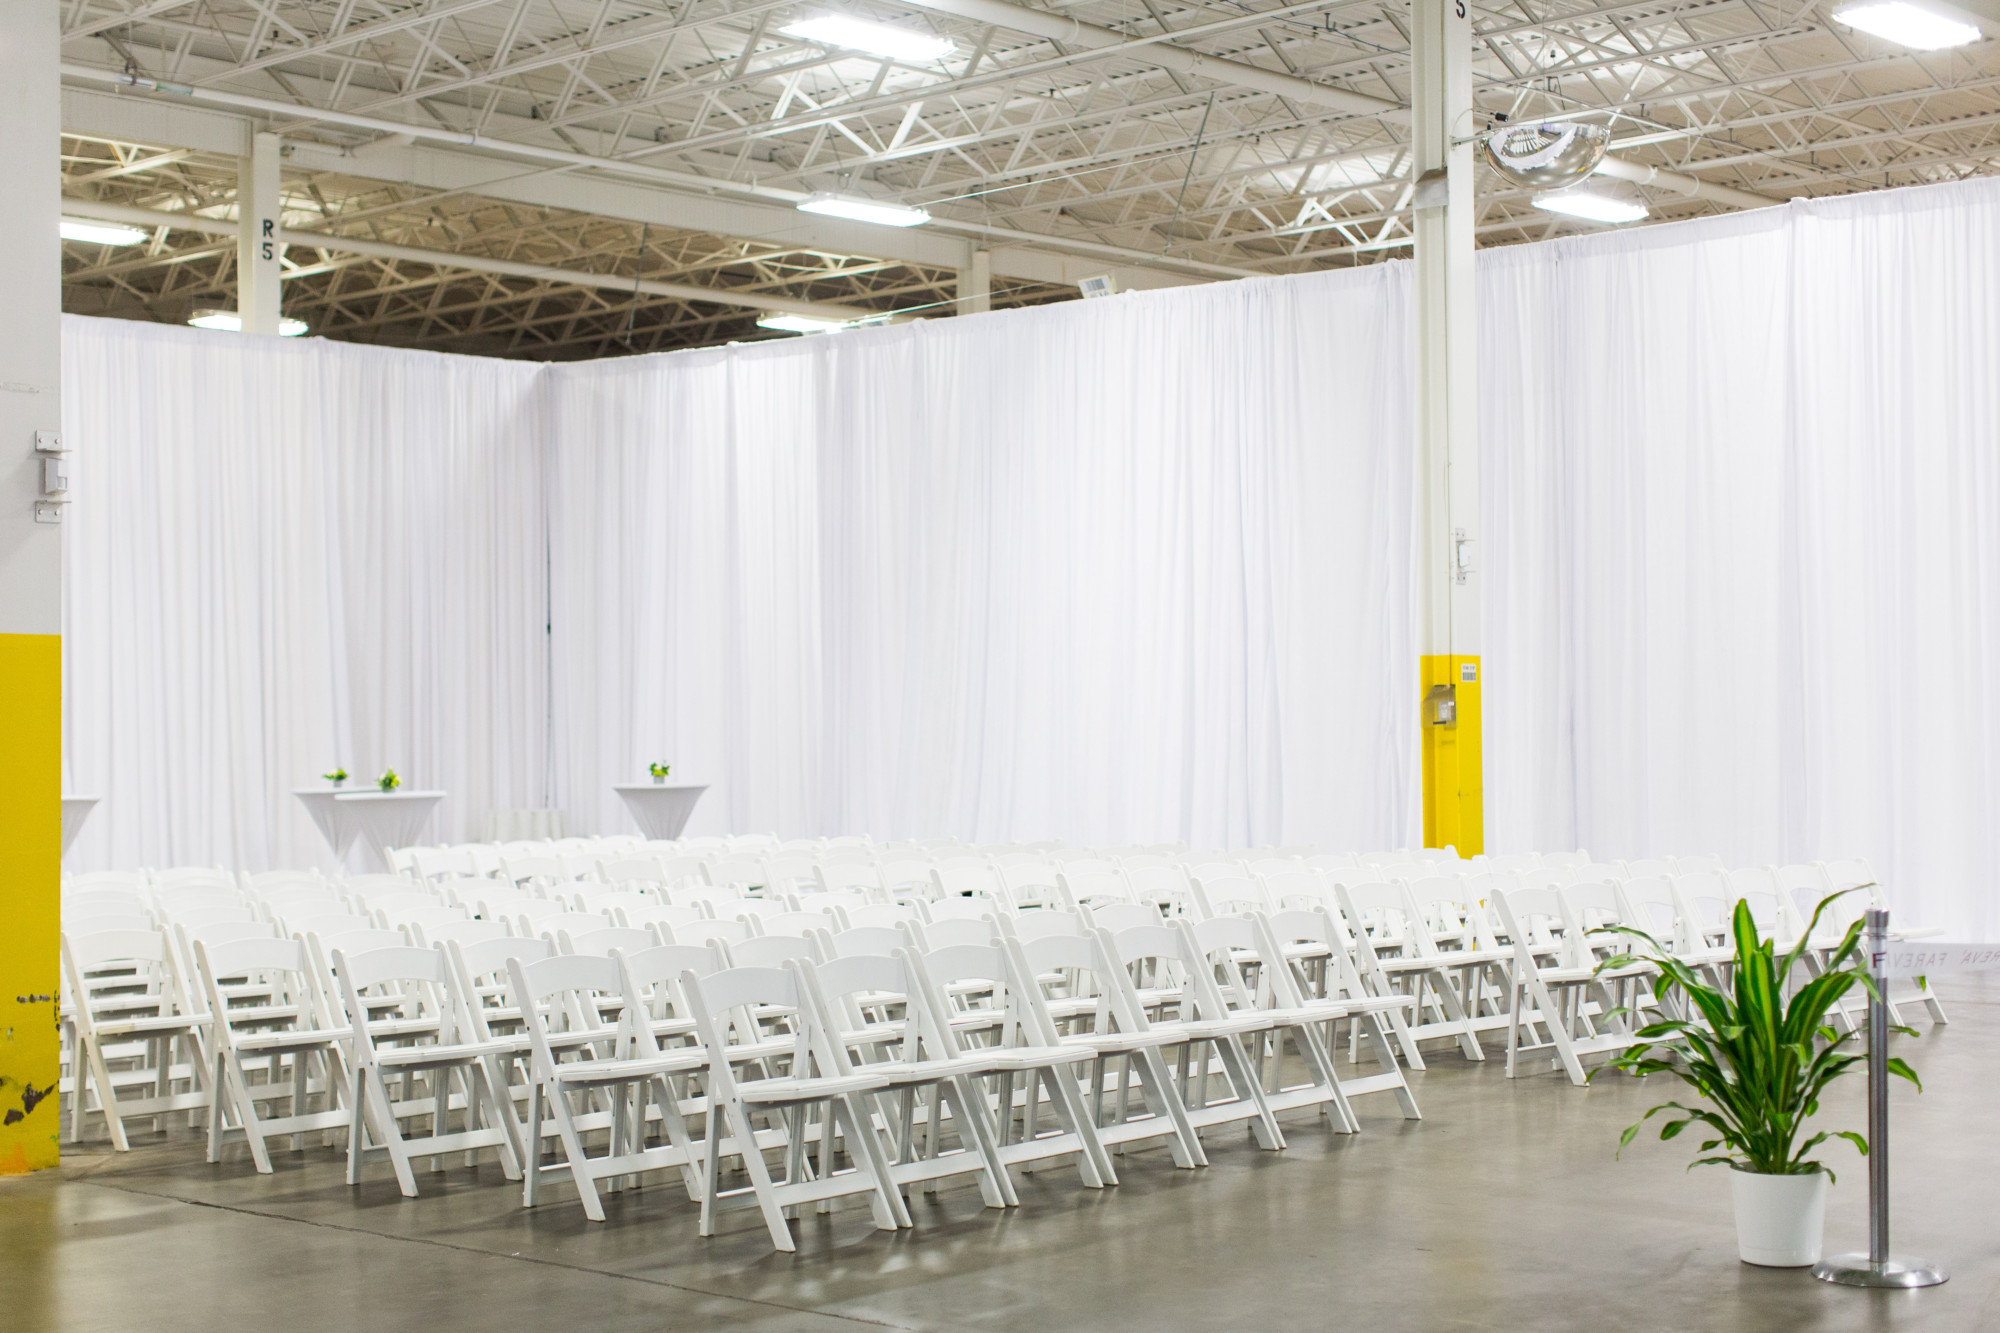 Corporate Events, Corporate Event Planning, Fareva, Michael Simon Photography, Industrial Events, Ribbon Cutting Ceremony, Richmond Events, Dry Shampoo, Aerosol